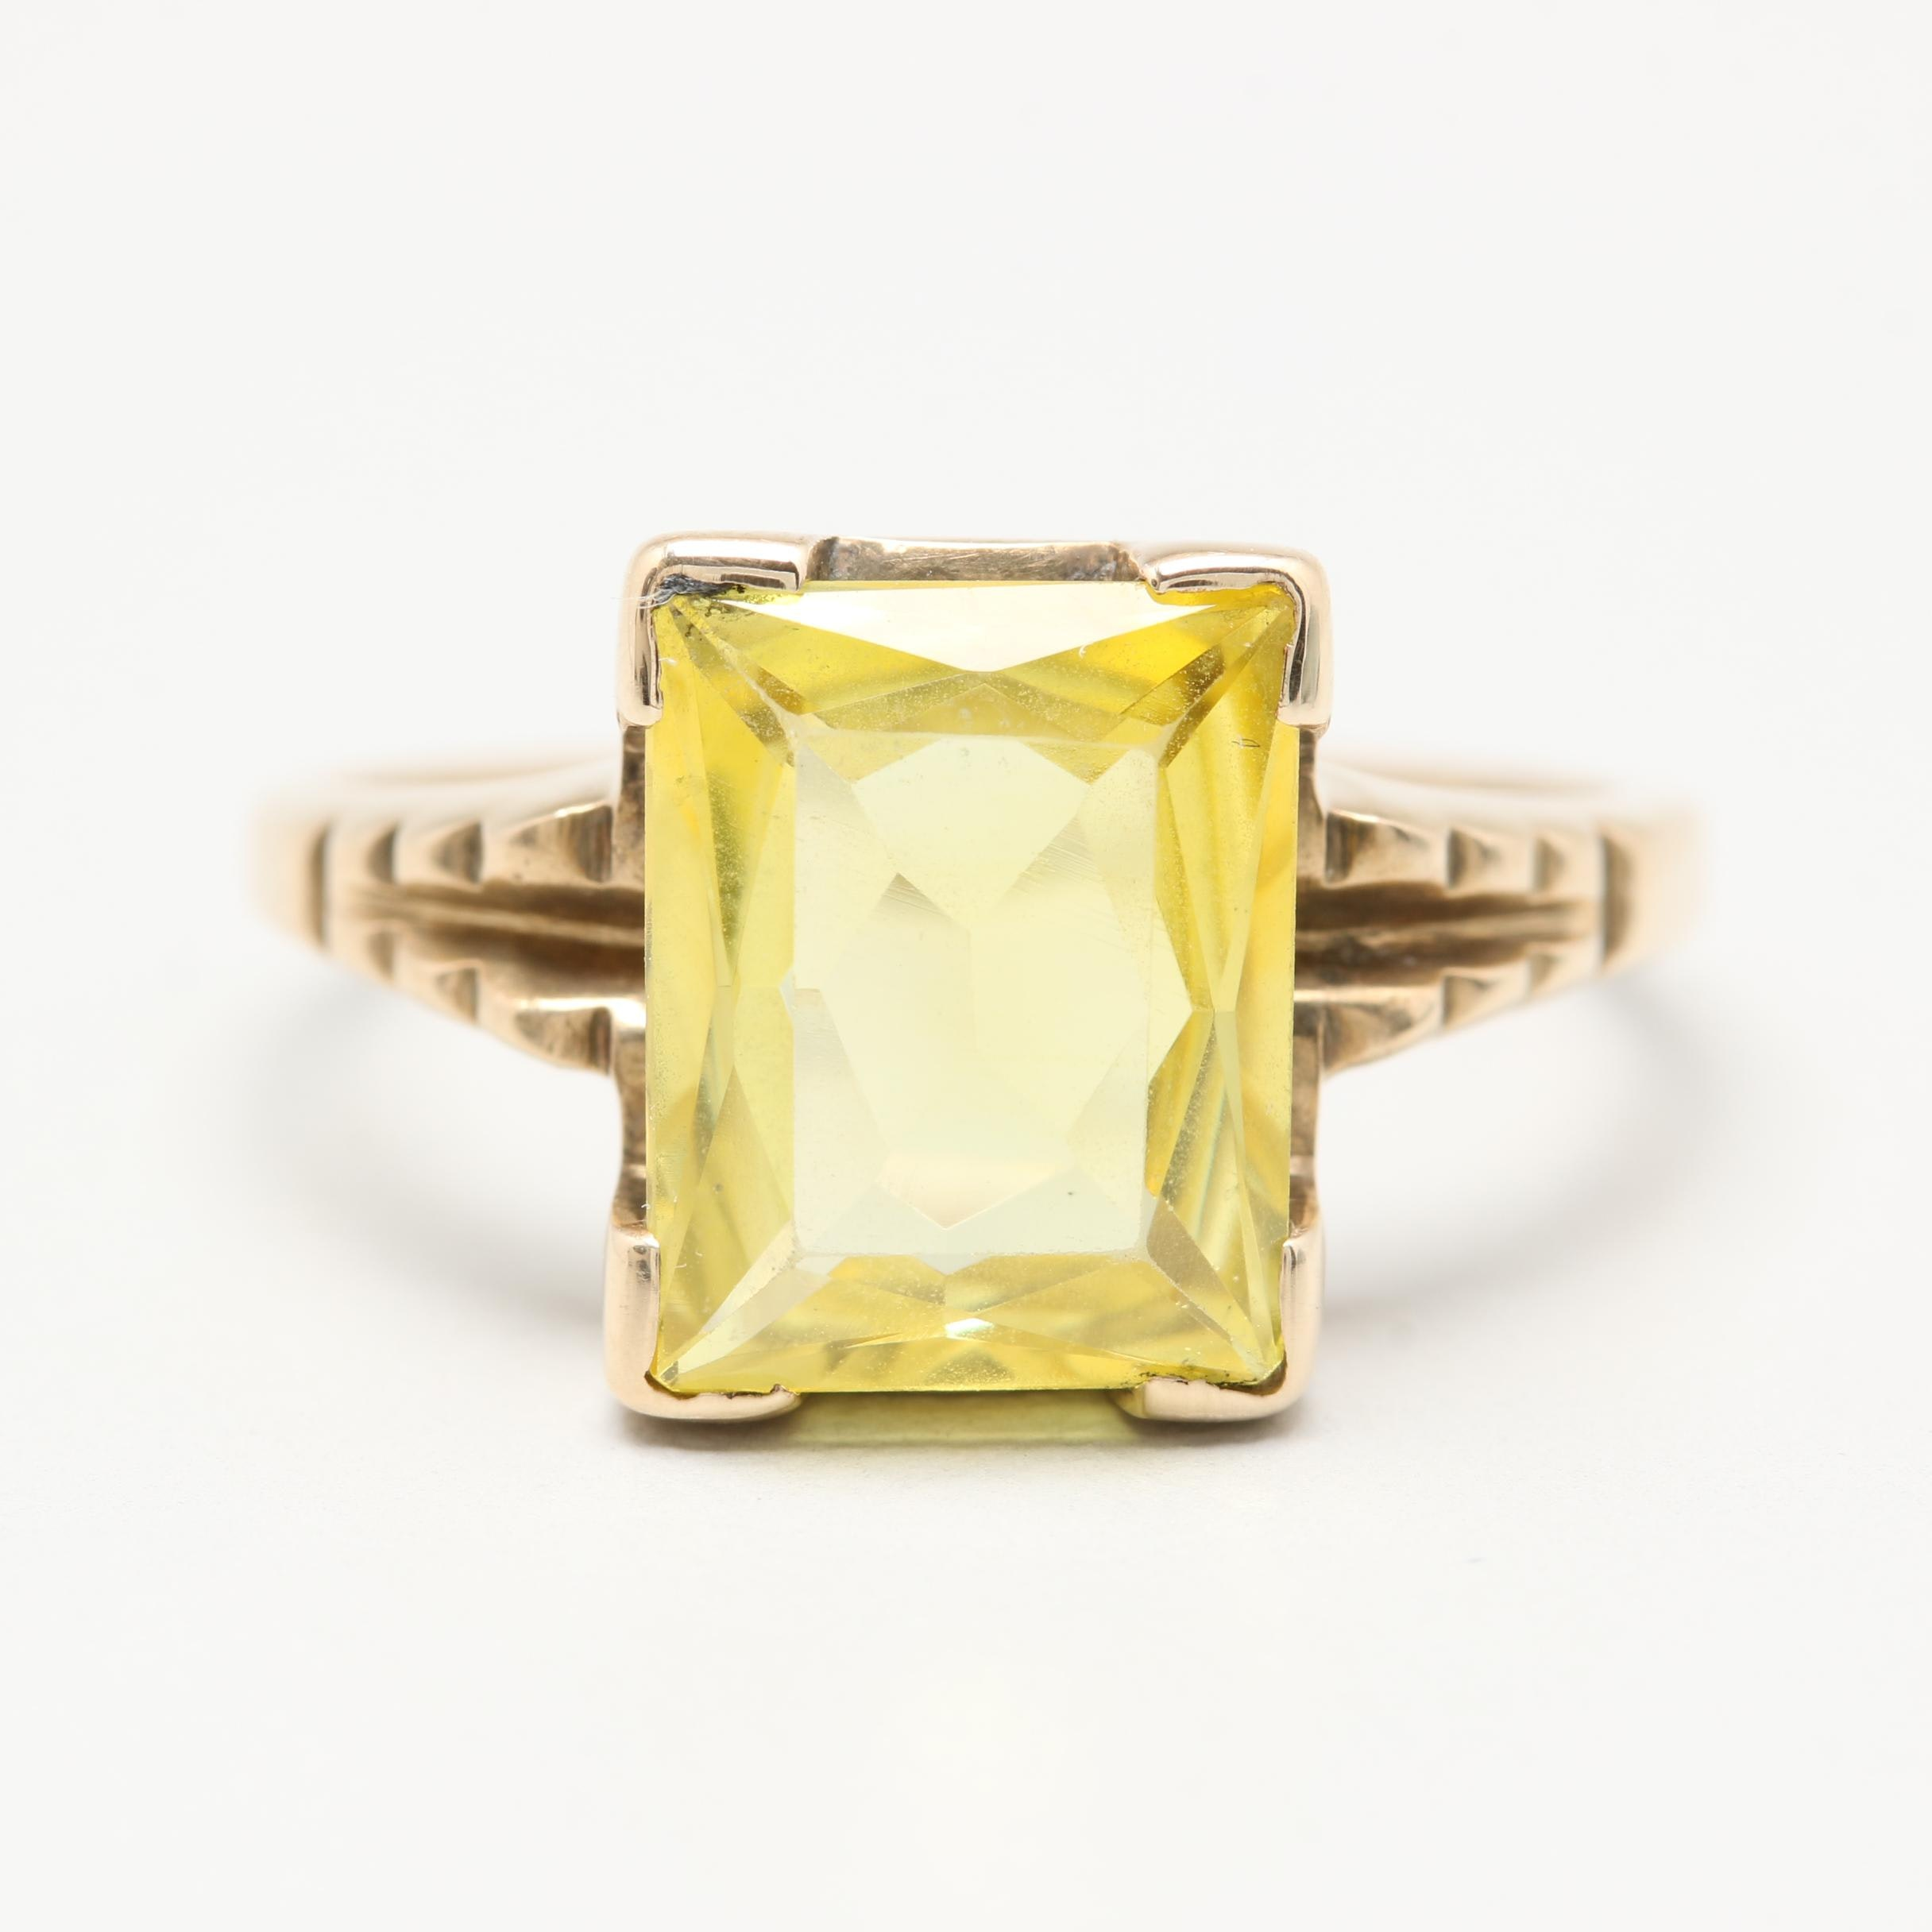 HandWrought 10K Yellow Gold Synthetic Yellow Sapphire Ring